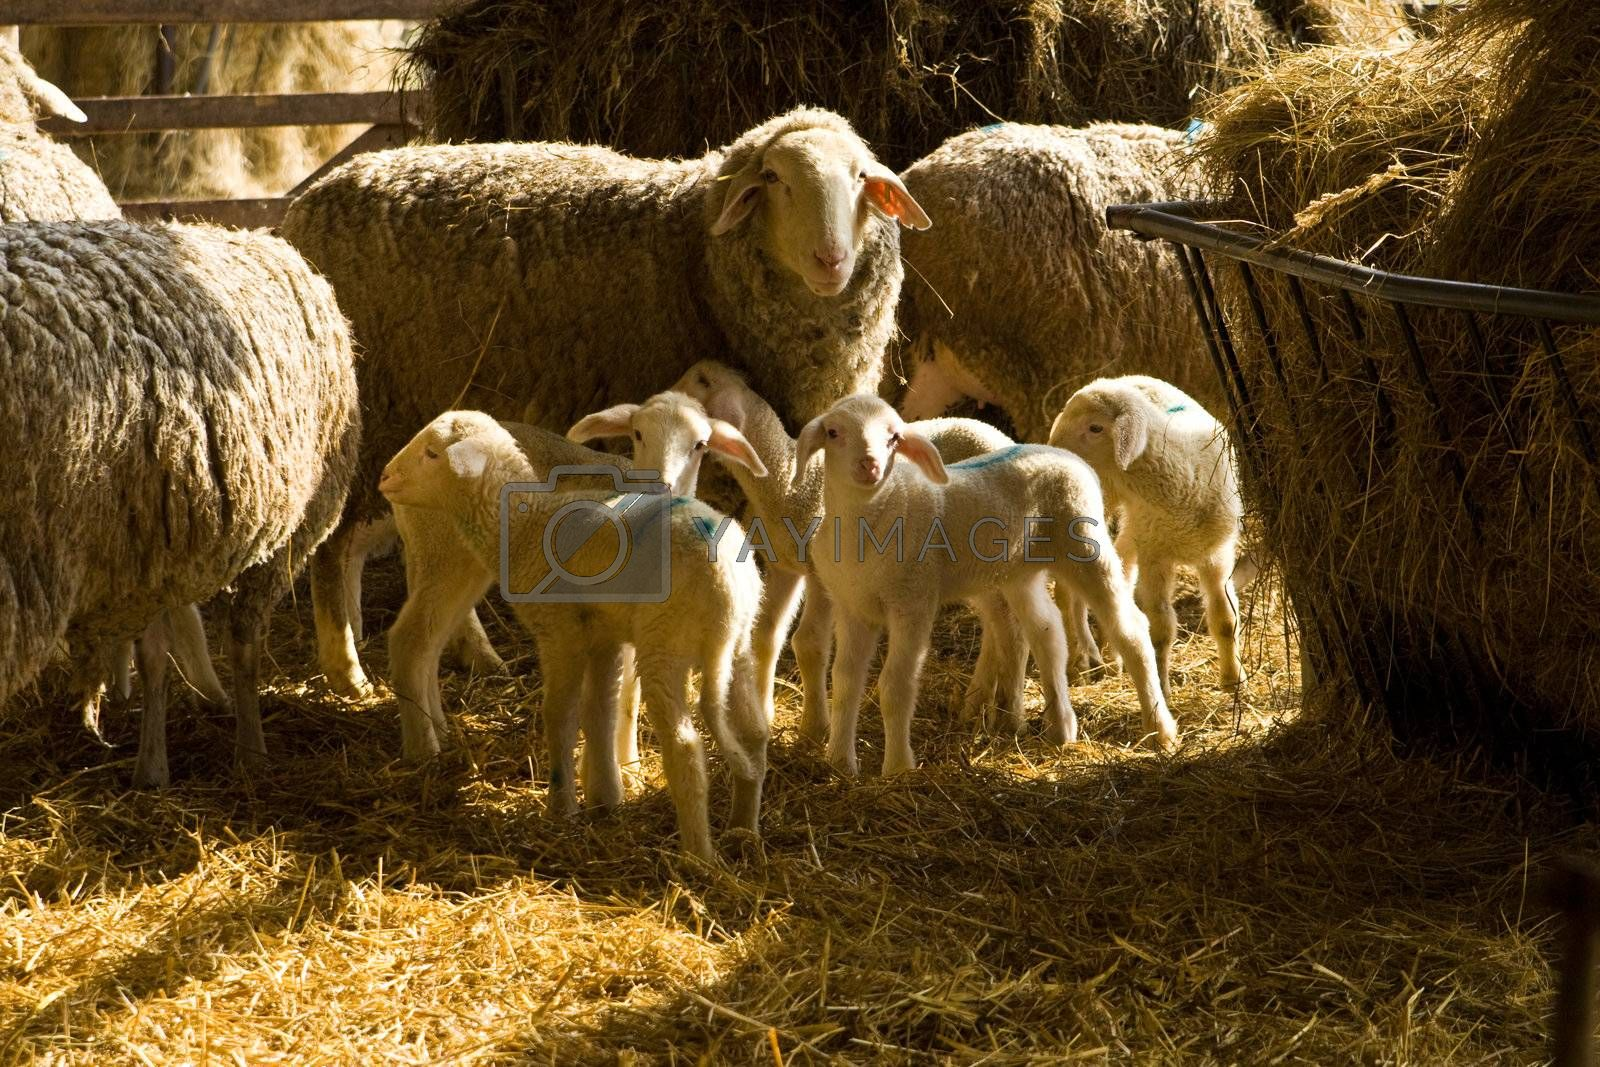 Royalty free image of sheeps and lambs by Copit